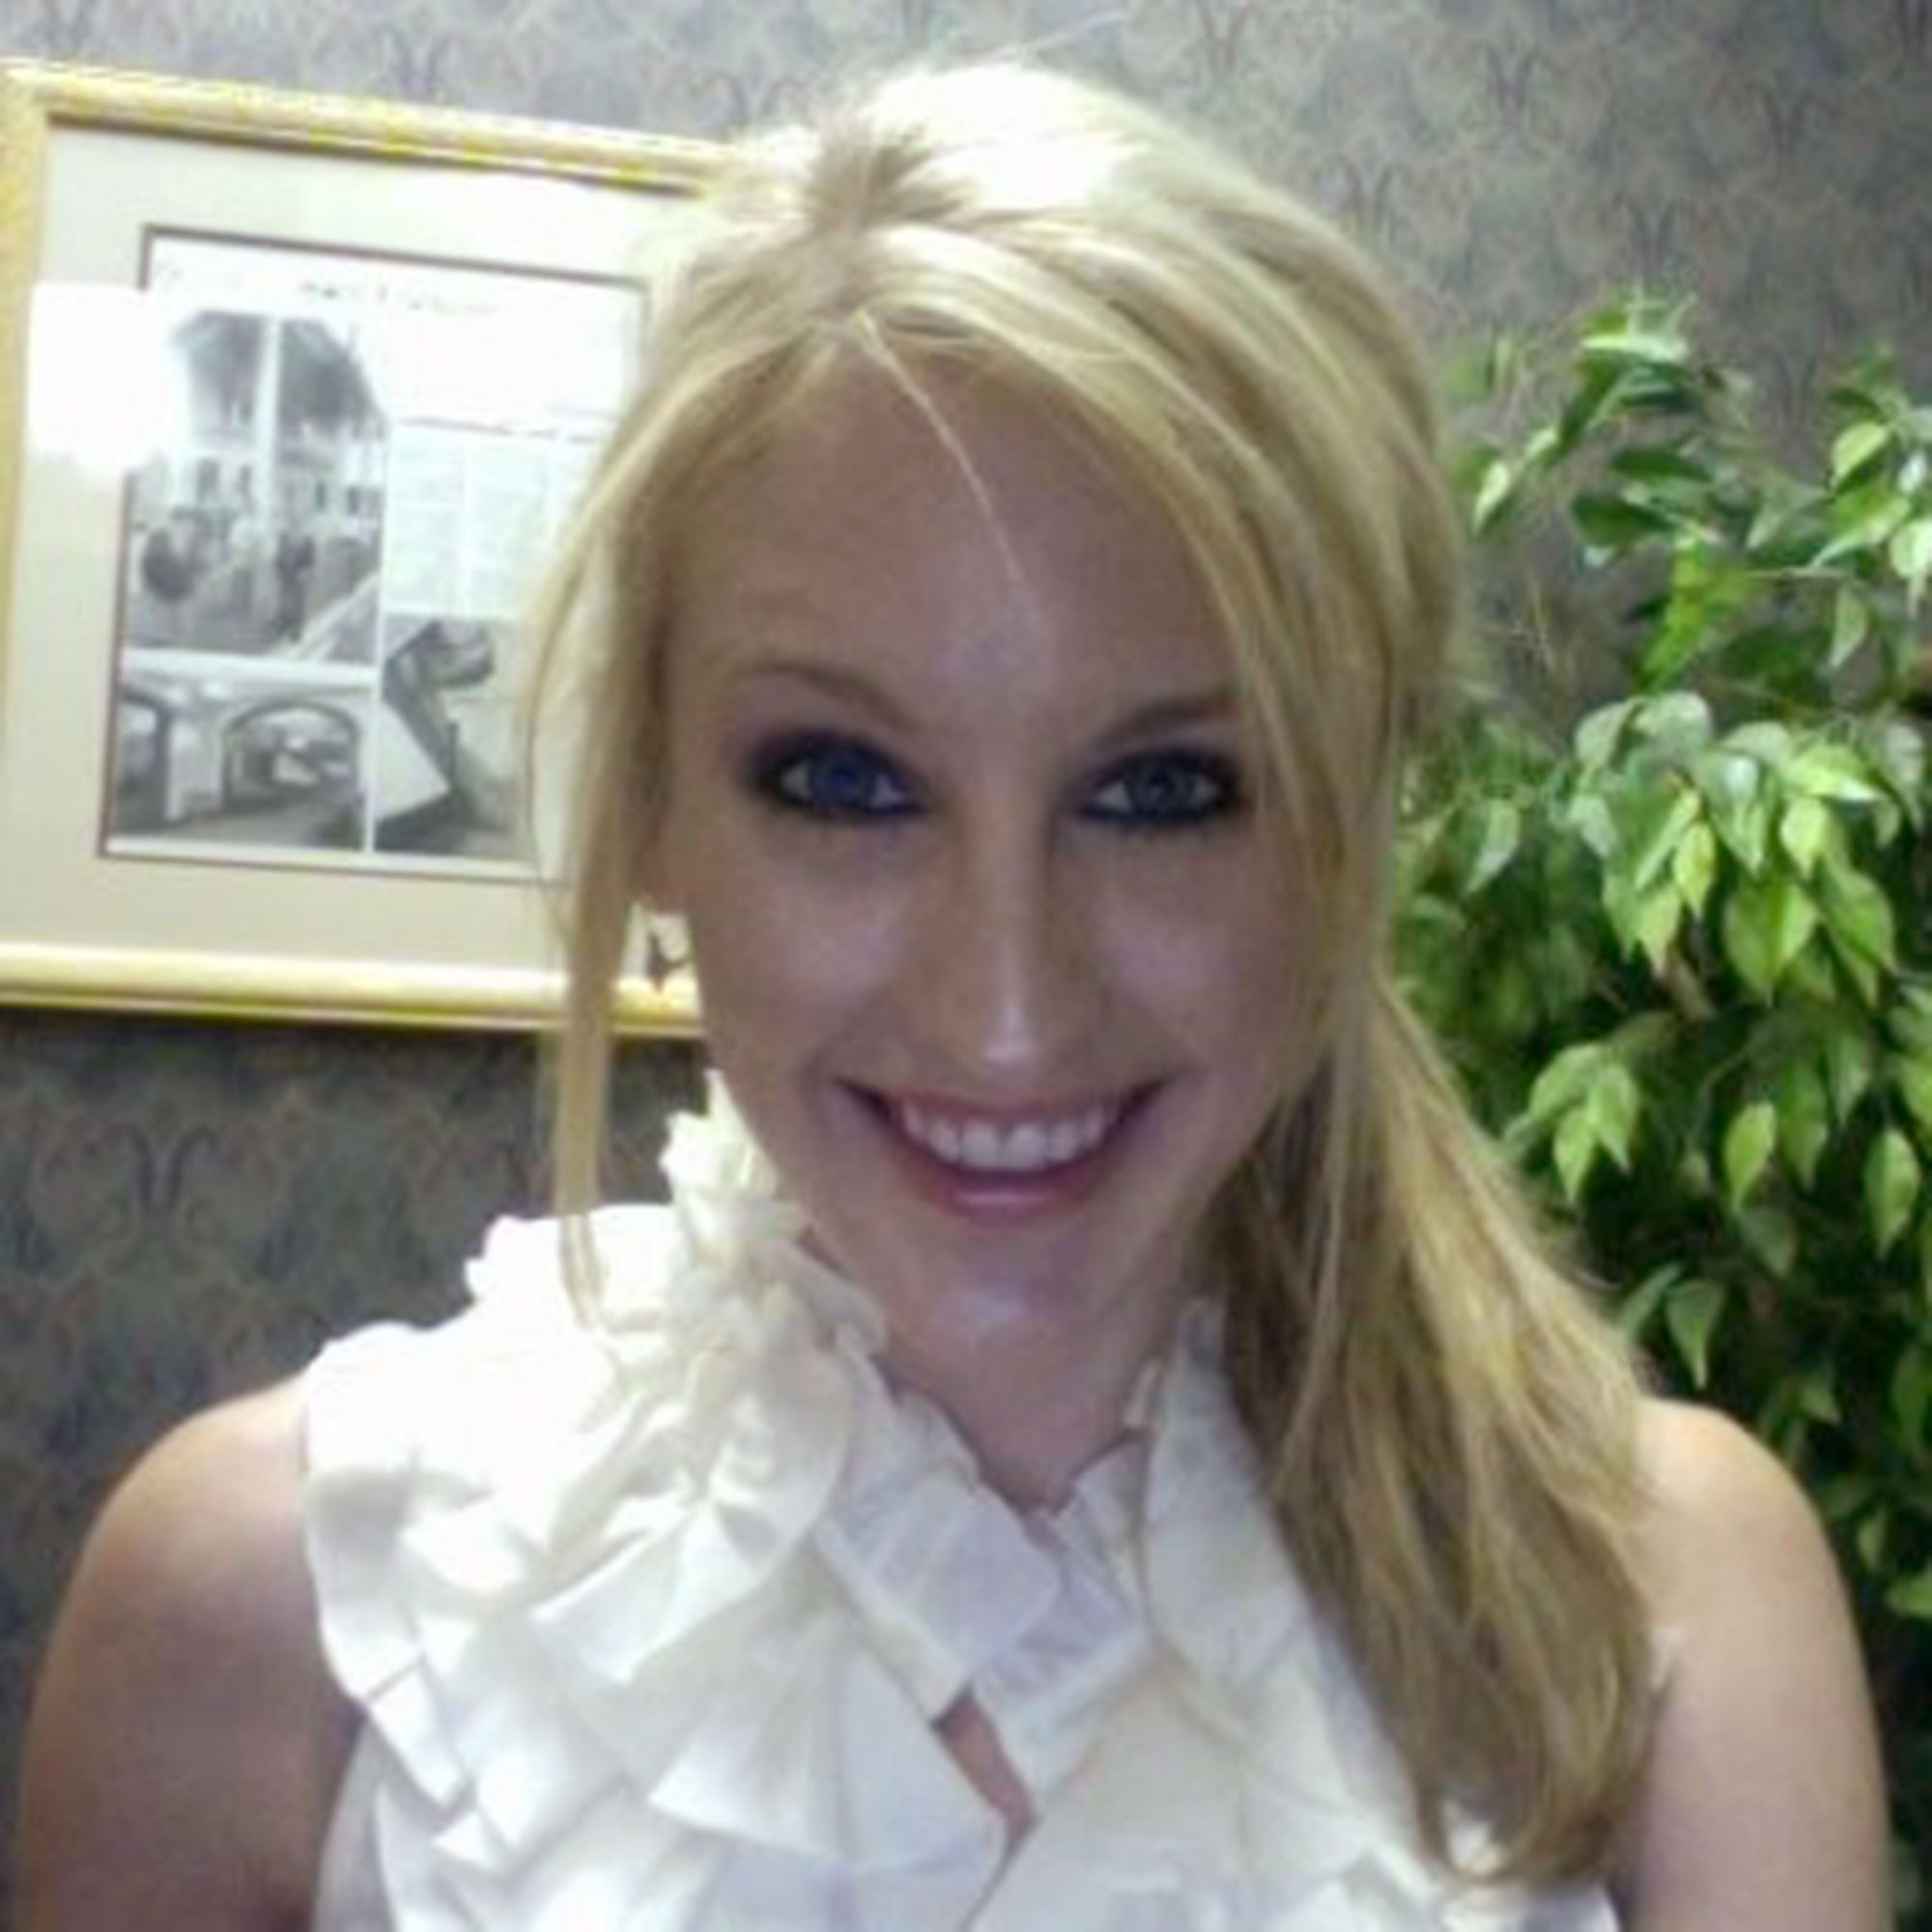 Lawyer, 29, Dies from Flu Complications: 'Take a Sickness Like That Seriously,' Friend Warns